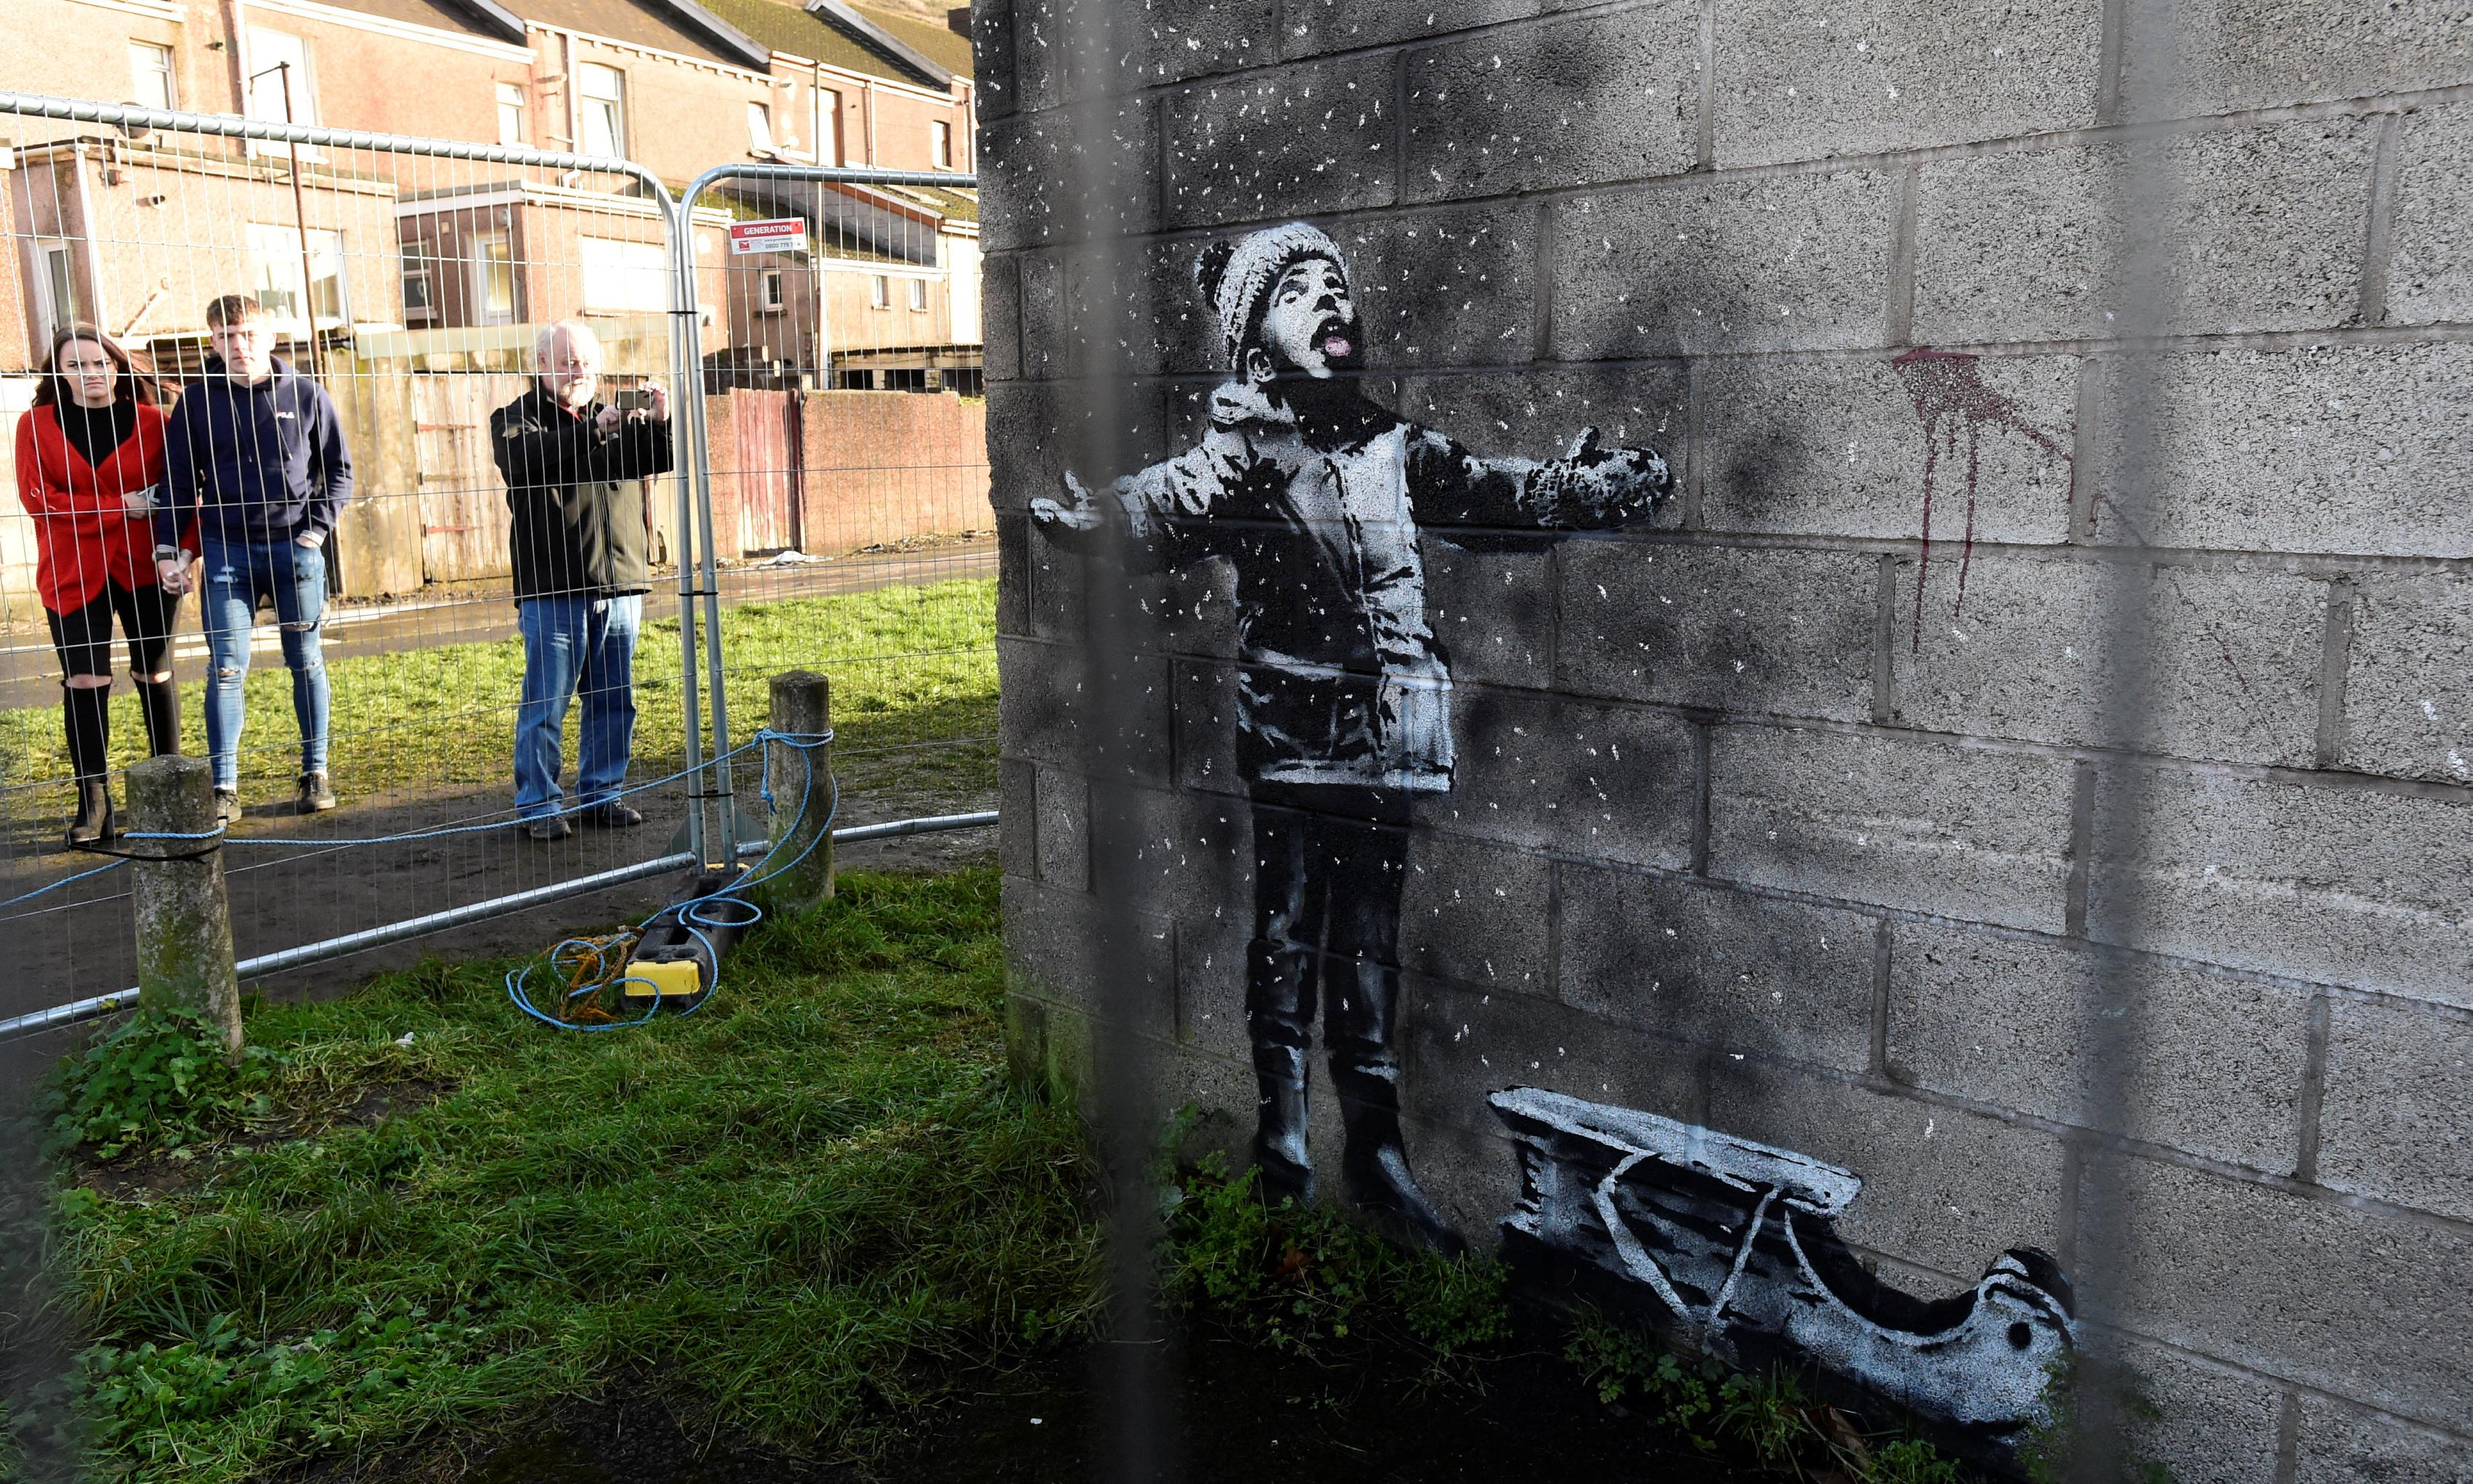 Plan for Banksy art gallery in Port Talbot may be under threat